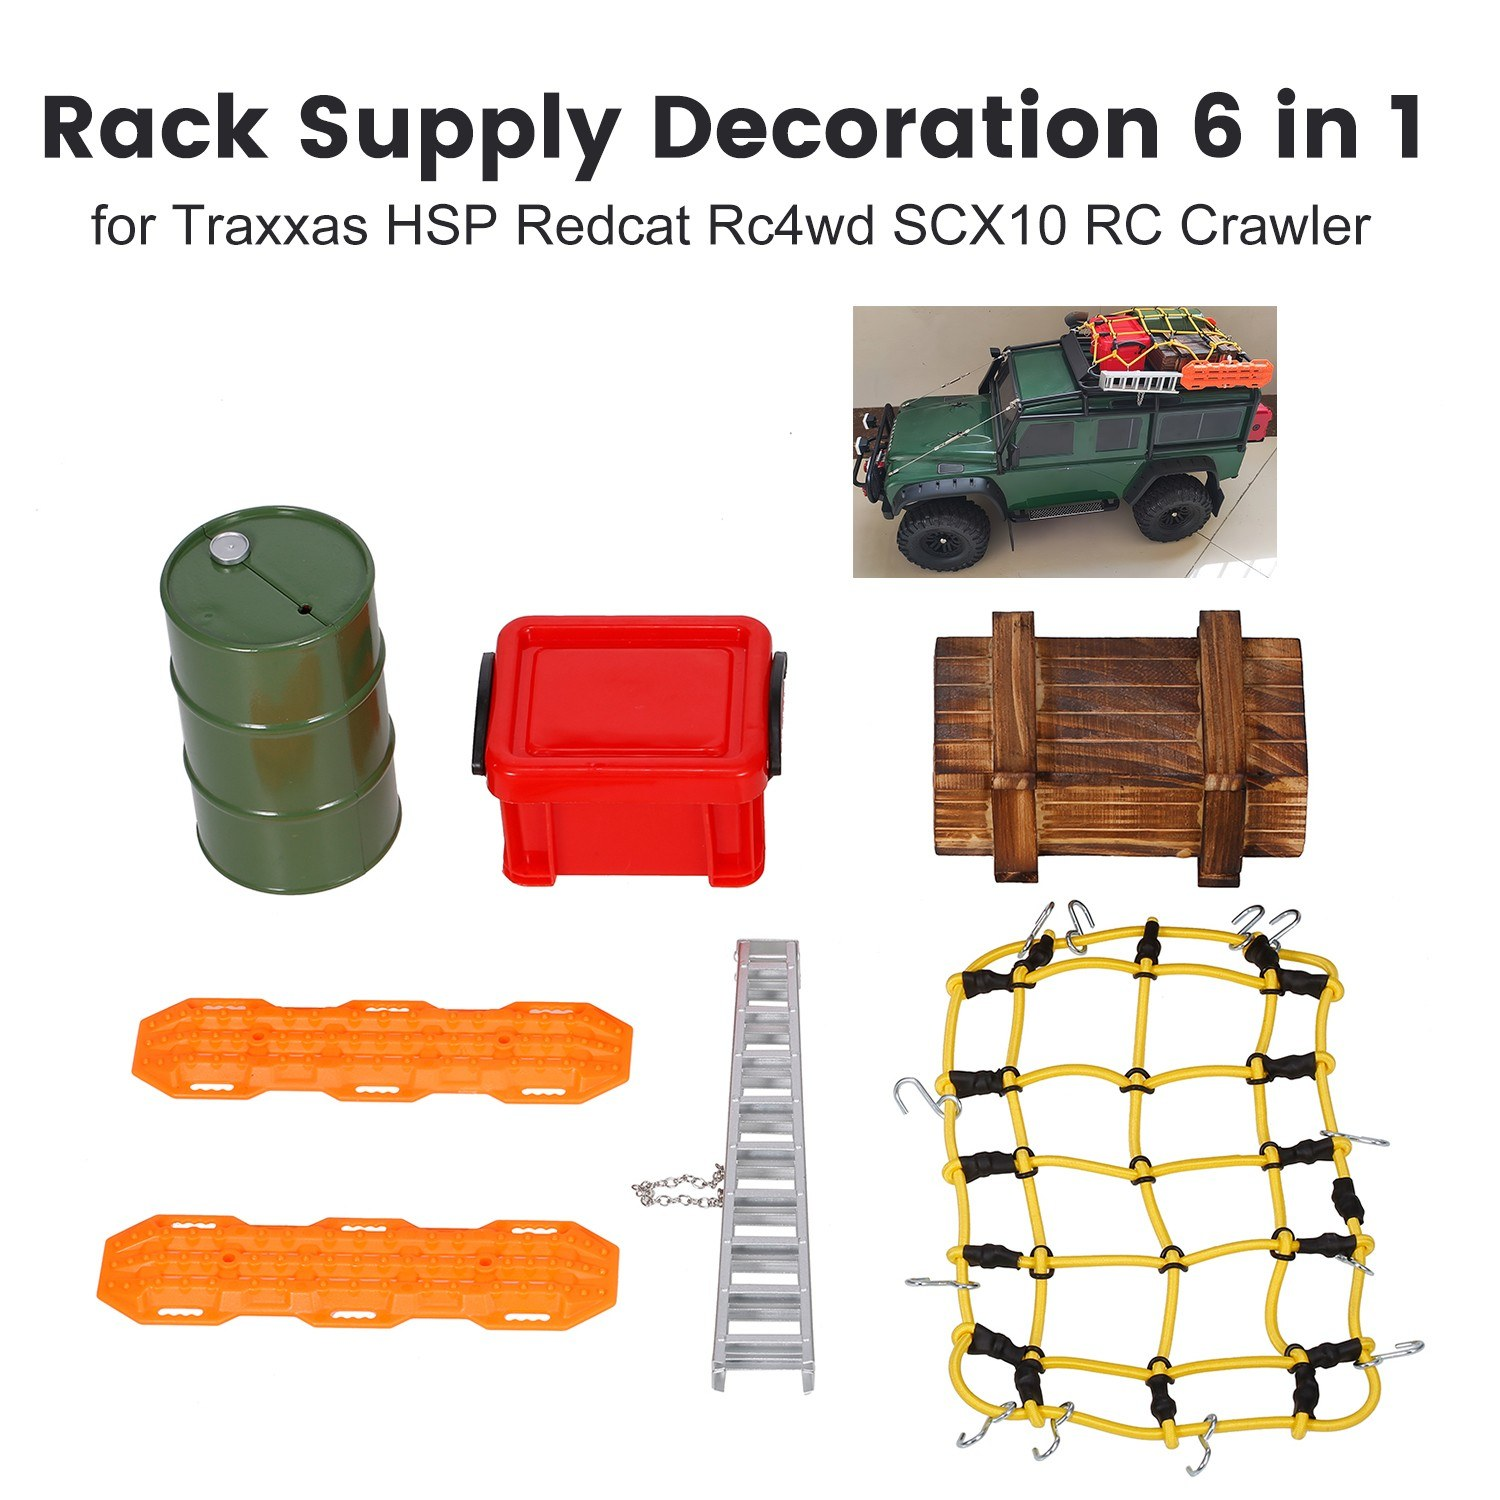 Rack Supply Decoration 6 in 1 Big Oil Tank Storage Box Wood Box Aluminum Ladder Self-Help Boards and Luggage Net for Traxxas Redcat Rc4wd SCX10 RC Crawler